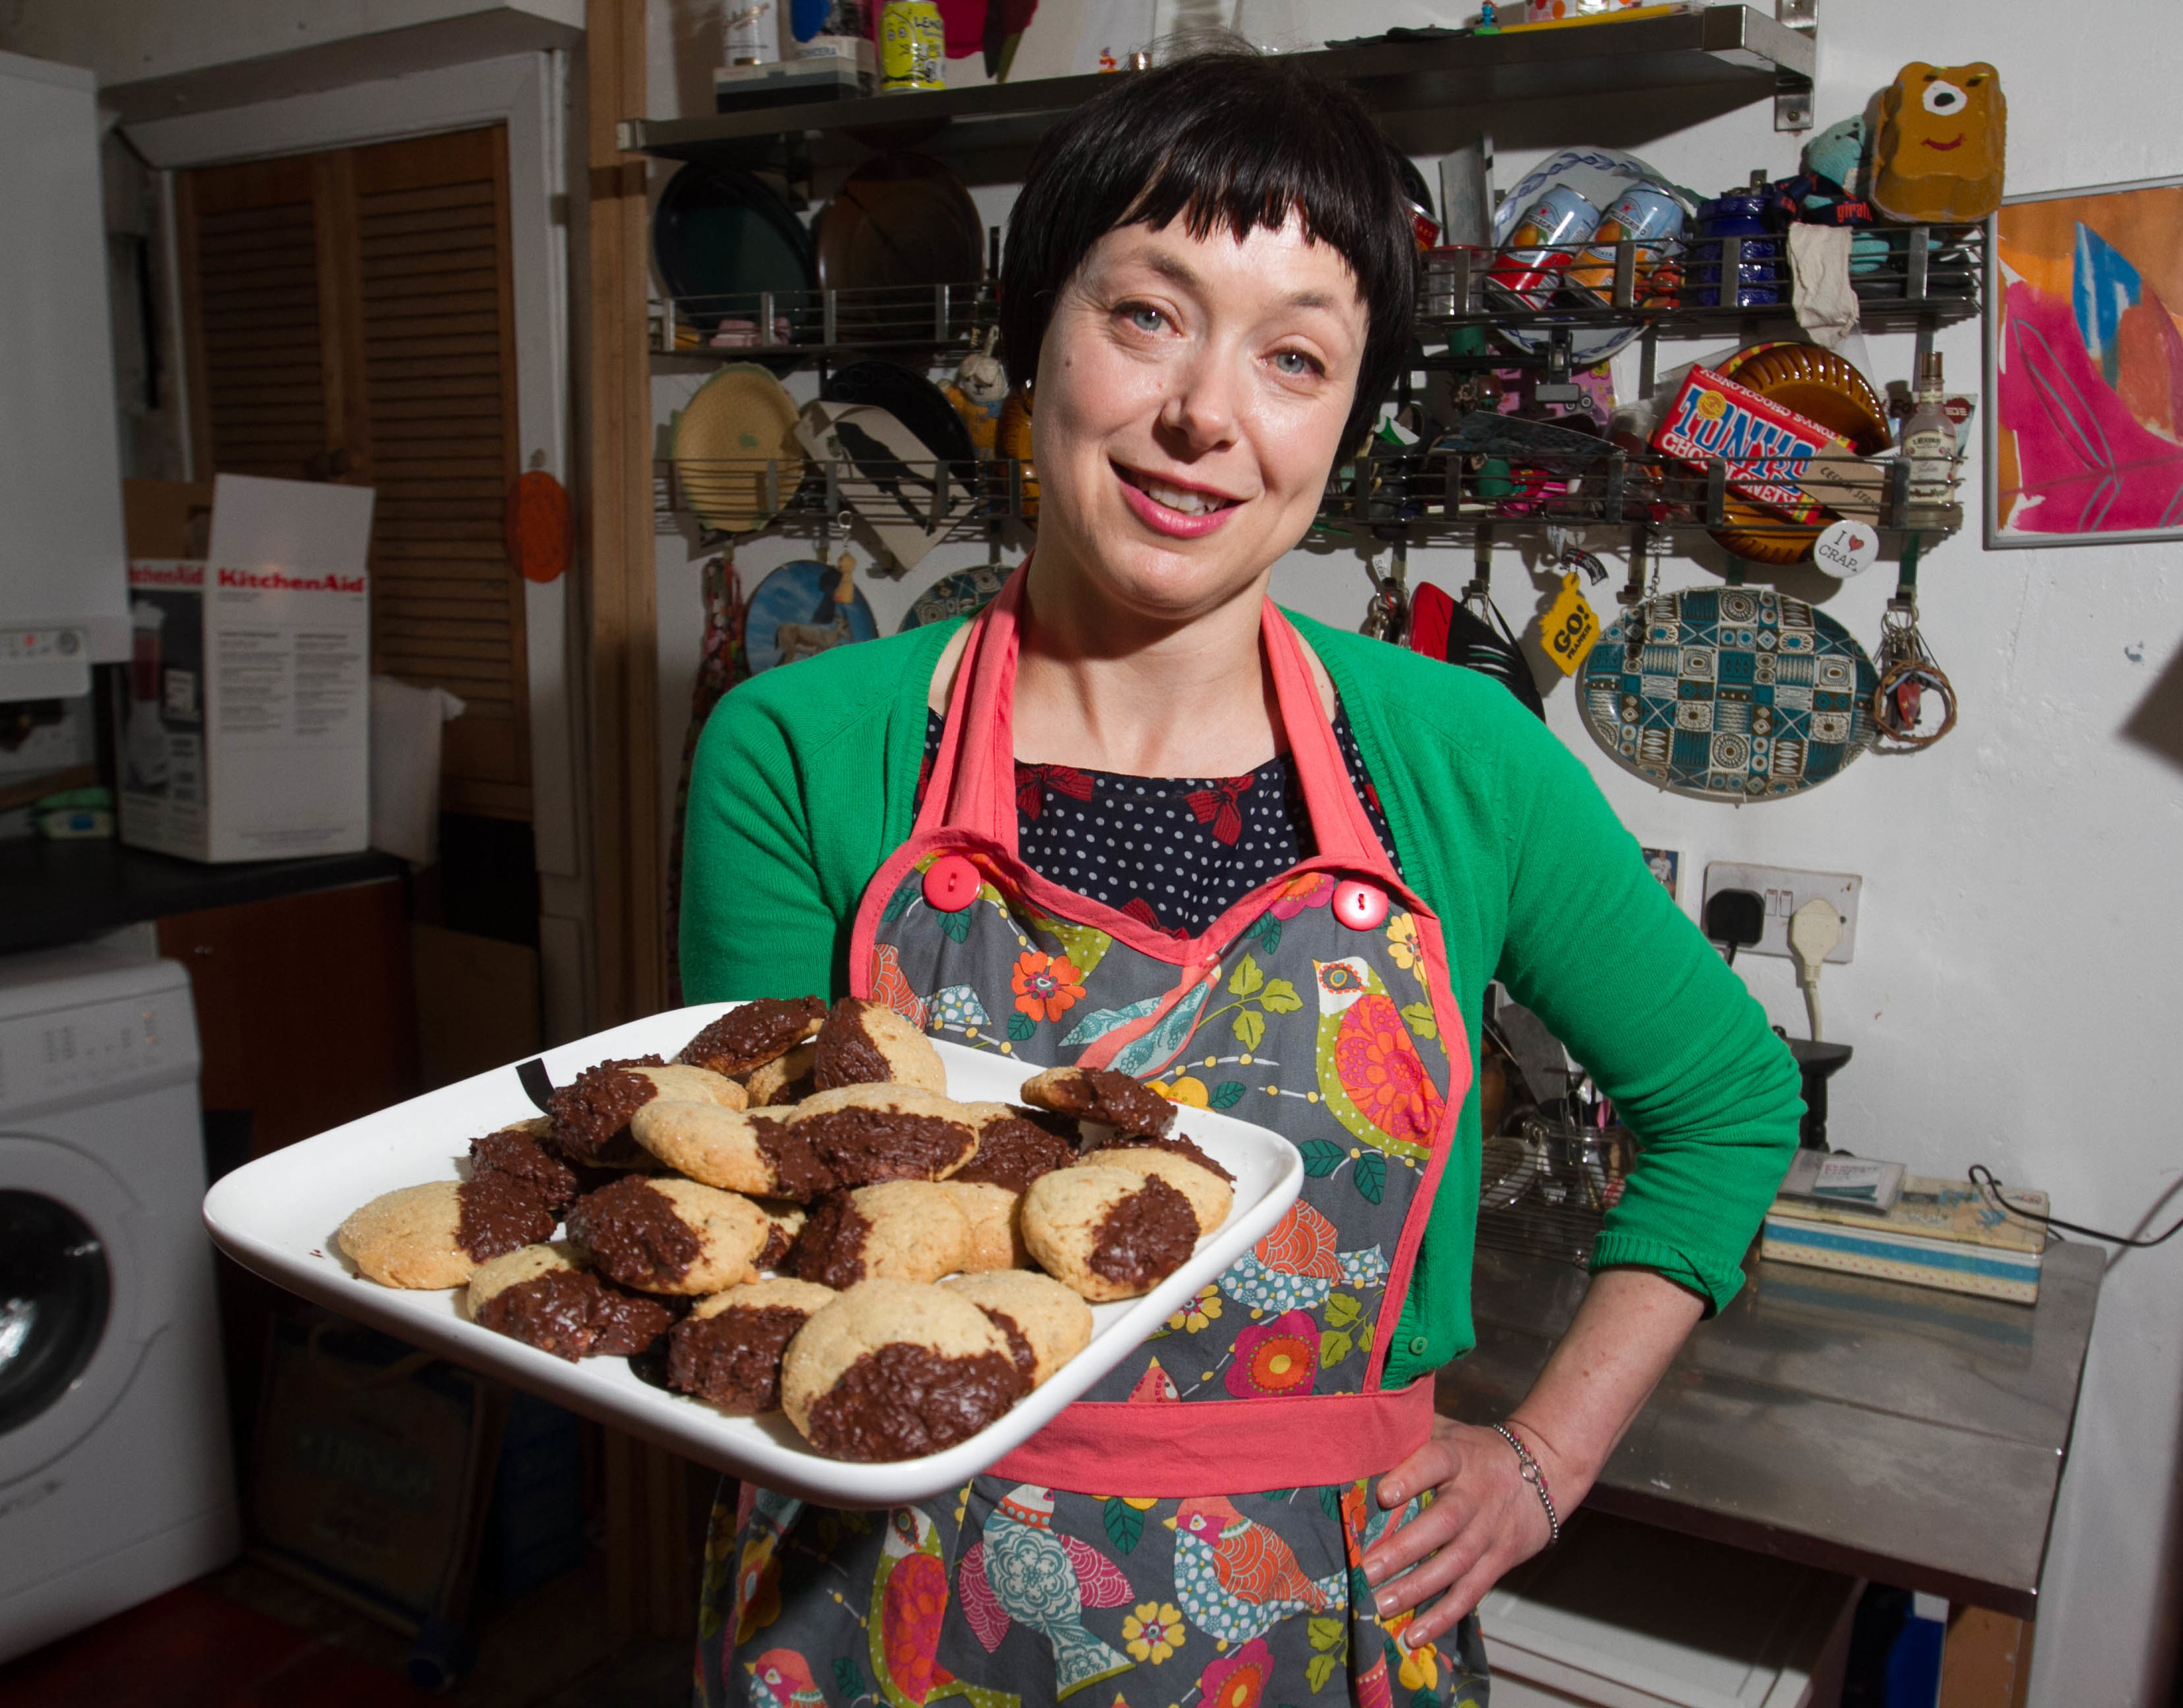 Gail Rainey makes cookies she learnt as child at school every year (Chris Austin/DC Thomson)